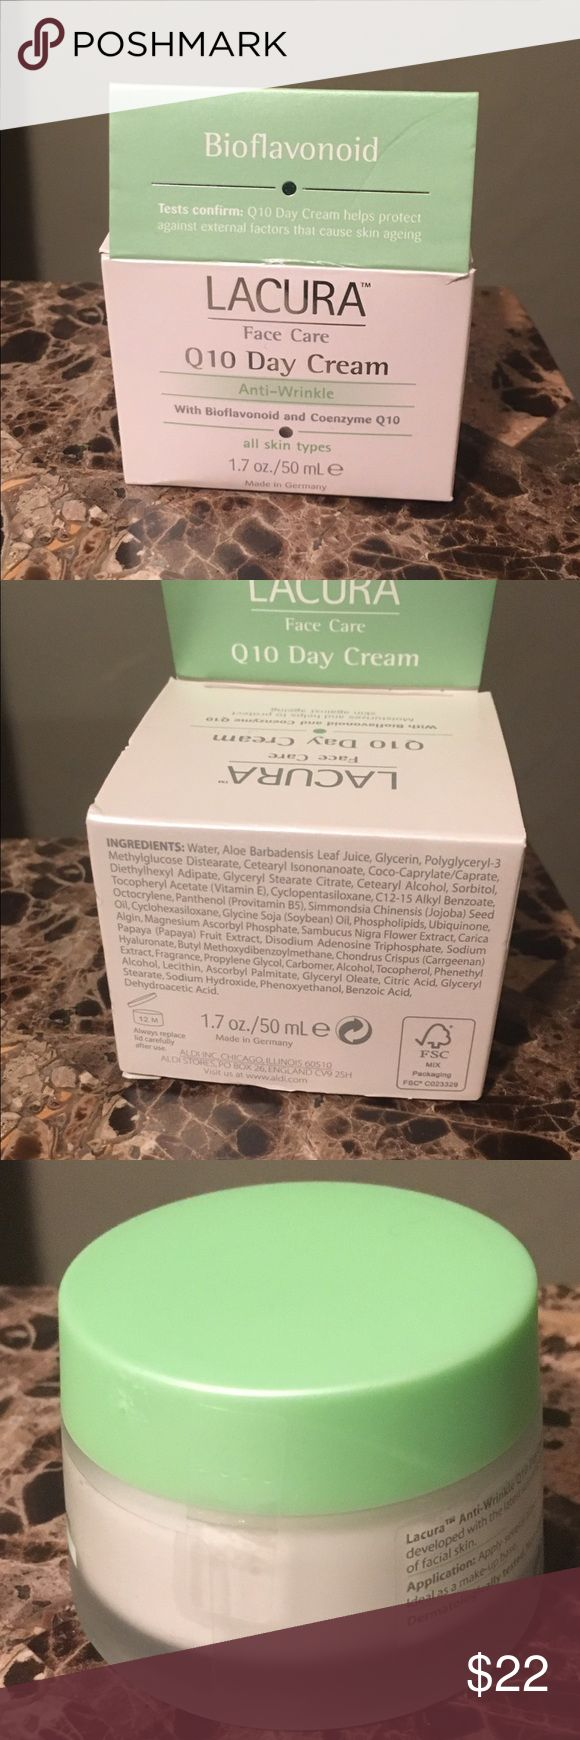 Lavera Anti-Wrinkle Face Day Cream Coenzyme Q10 New and sealed Lacura Face Care Q10 day cream. Cream is anti-wrinkle with bioflavonoid and coenzyme Q10. Size 1.7oz or 50mL. Box is slightly dented. Have had for less than a month in my closet and do not believe that it is expired. There is a stamp on the bottom of the box, see photo. Lacura Makeup